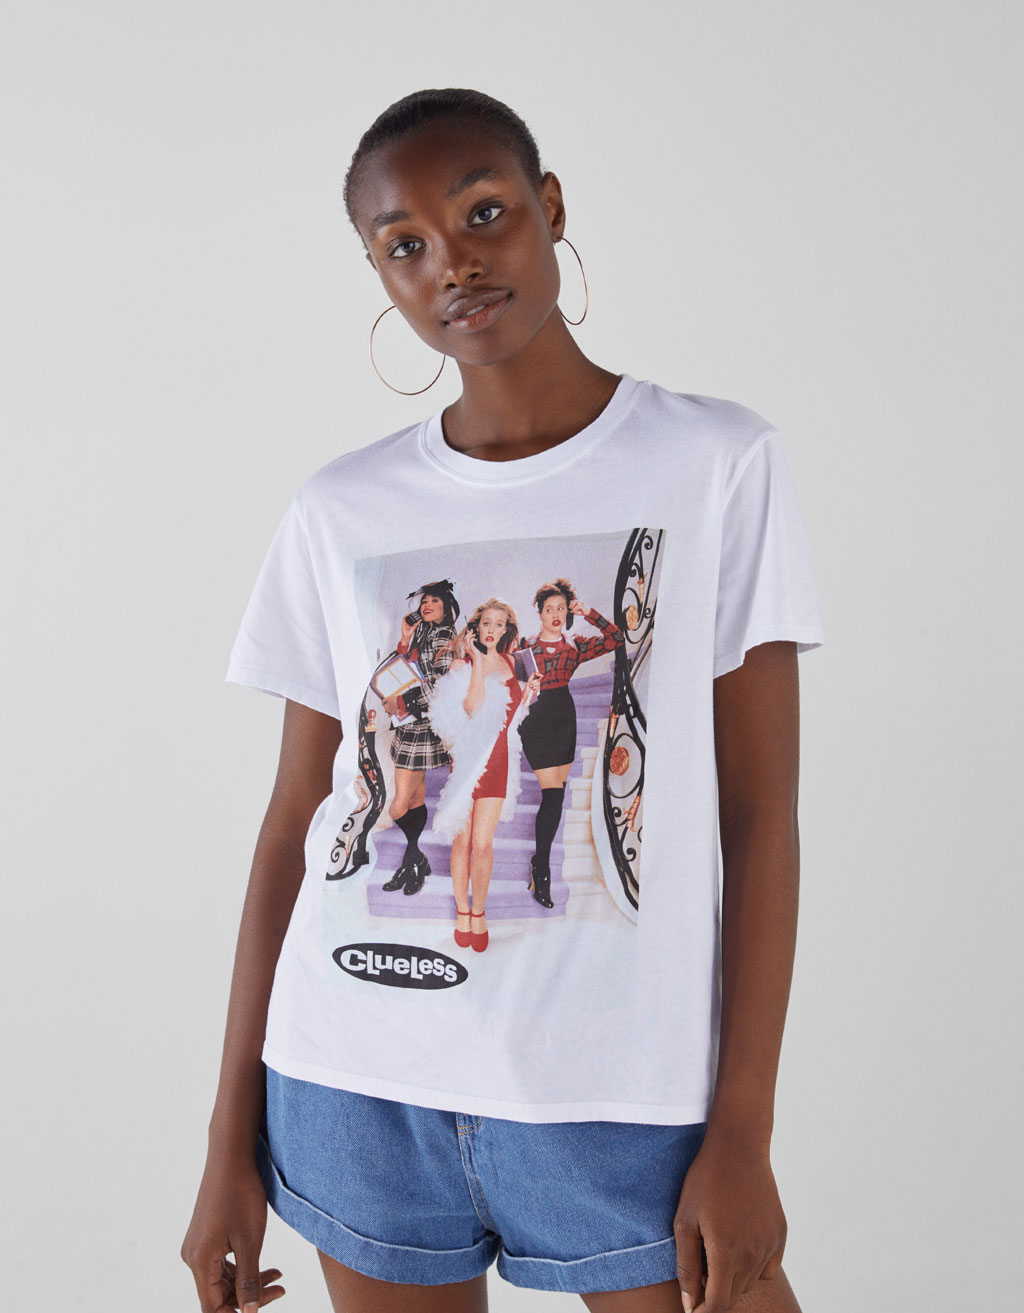 Clueless Tシャツ